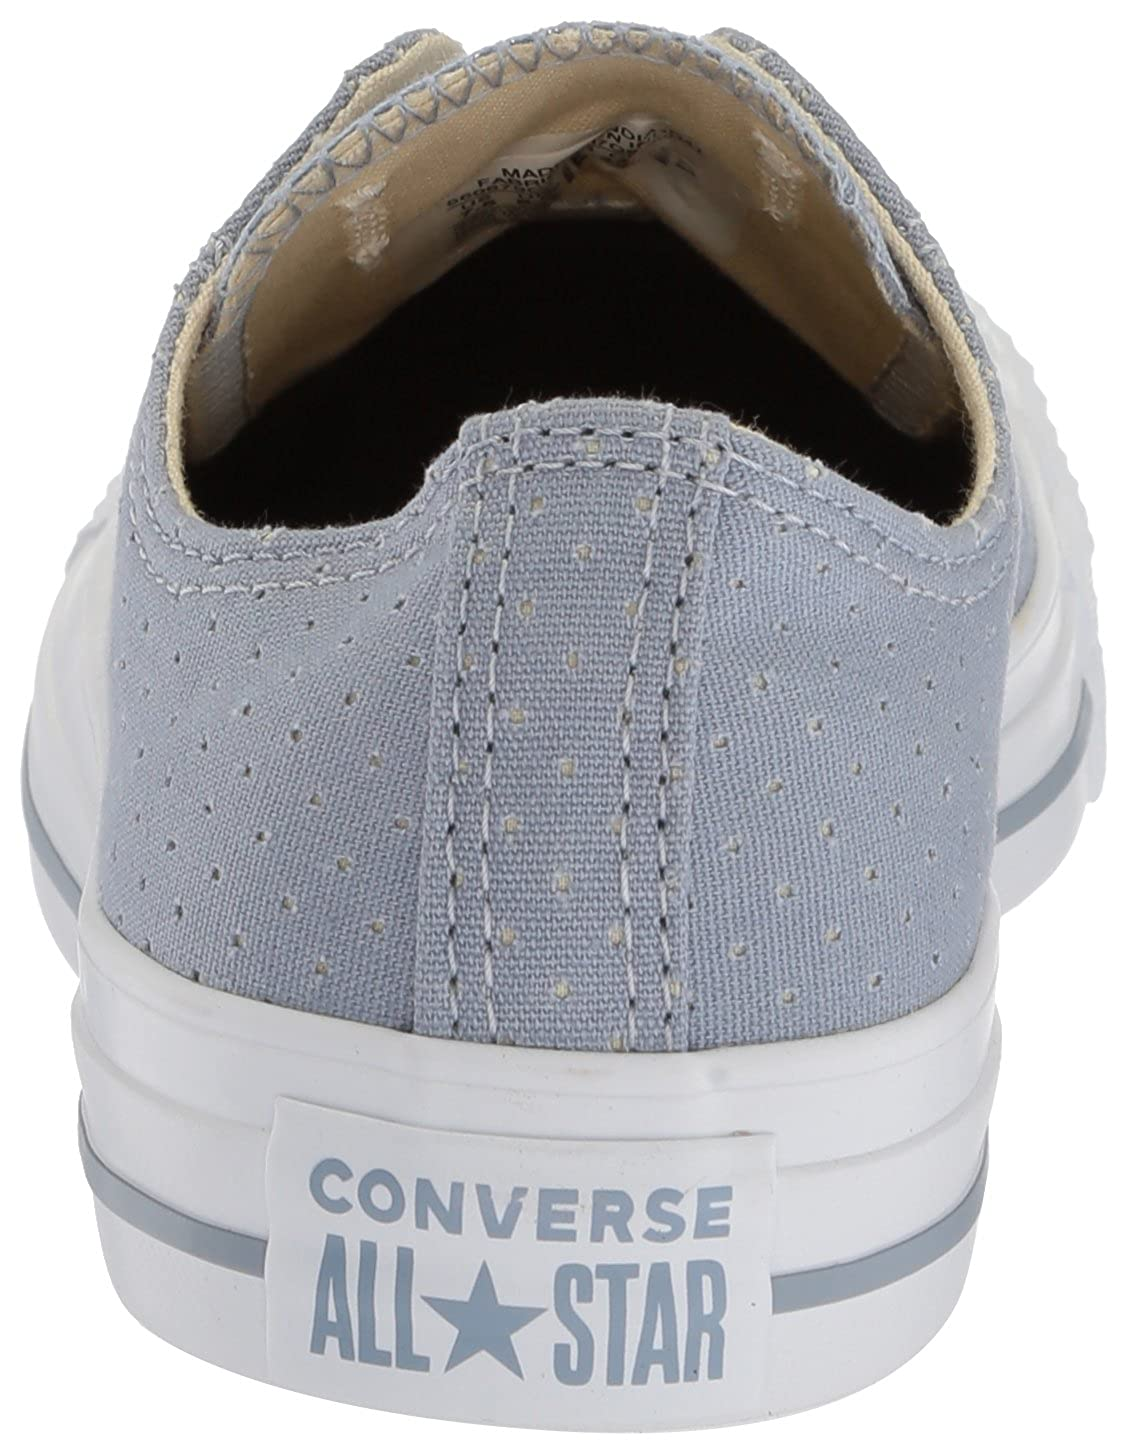 77b64c06b216 Converse Women s s CTAS Ox Glacier Grey White Trainers  Amazon.co.uk  Shoes    Bags